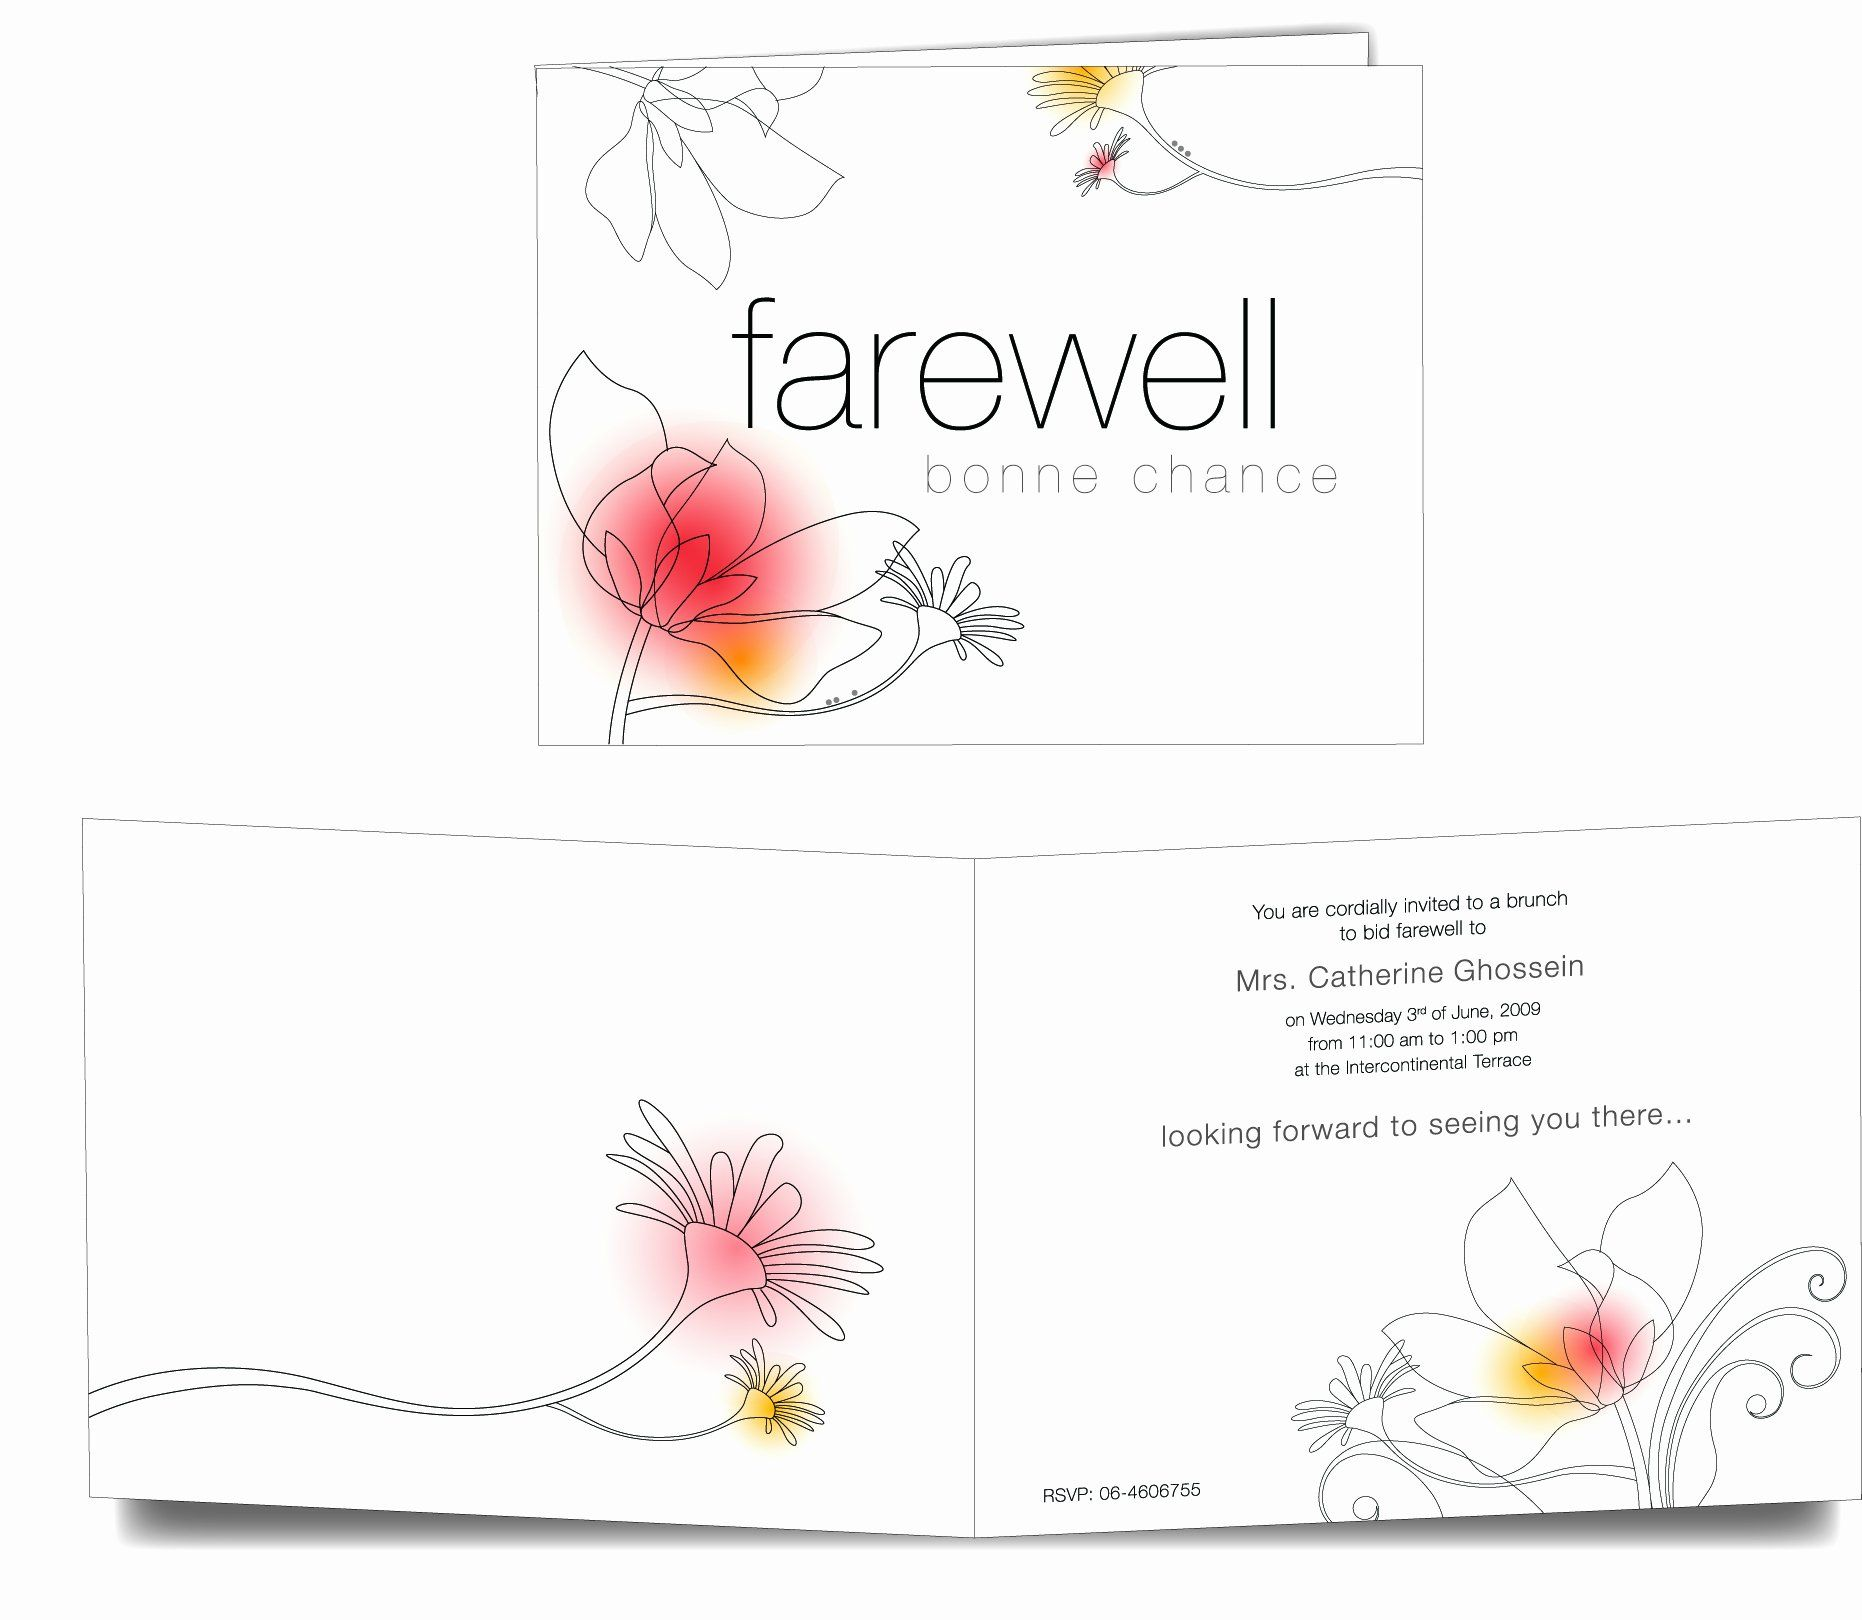 view 41 get farewell card template microsoft word free